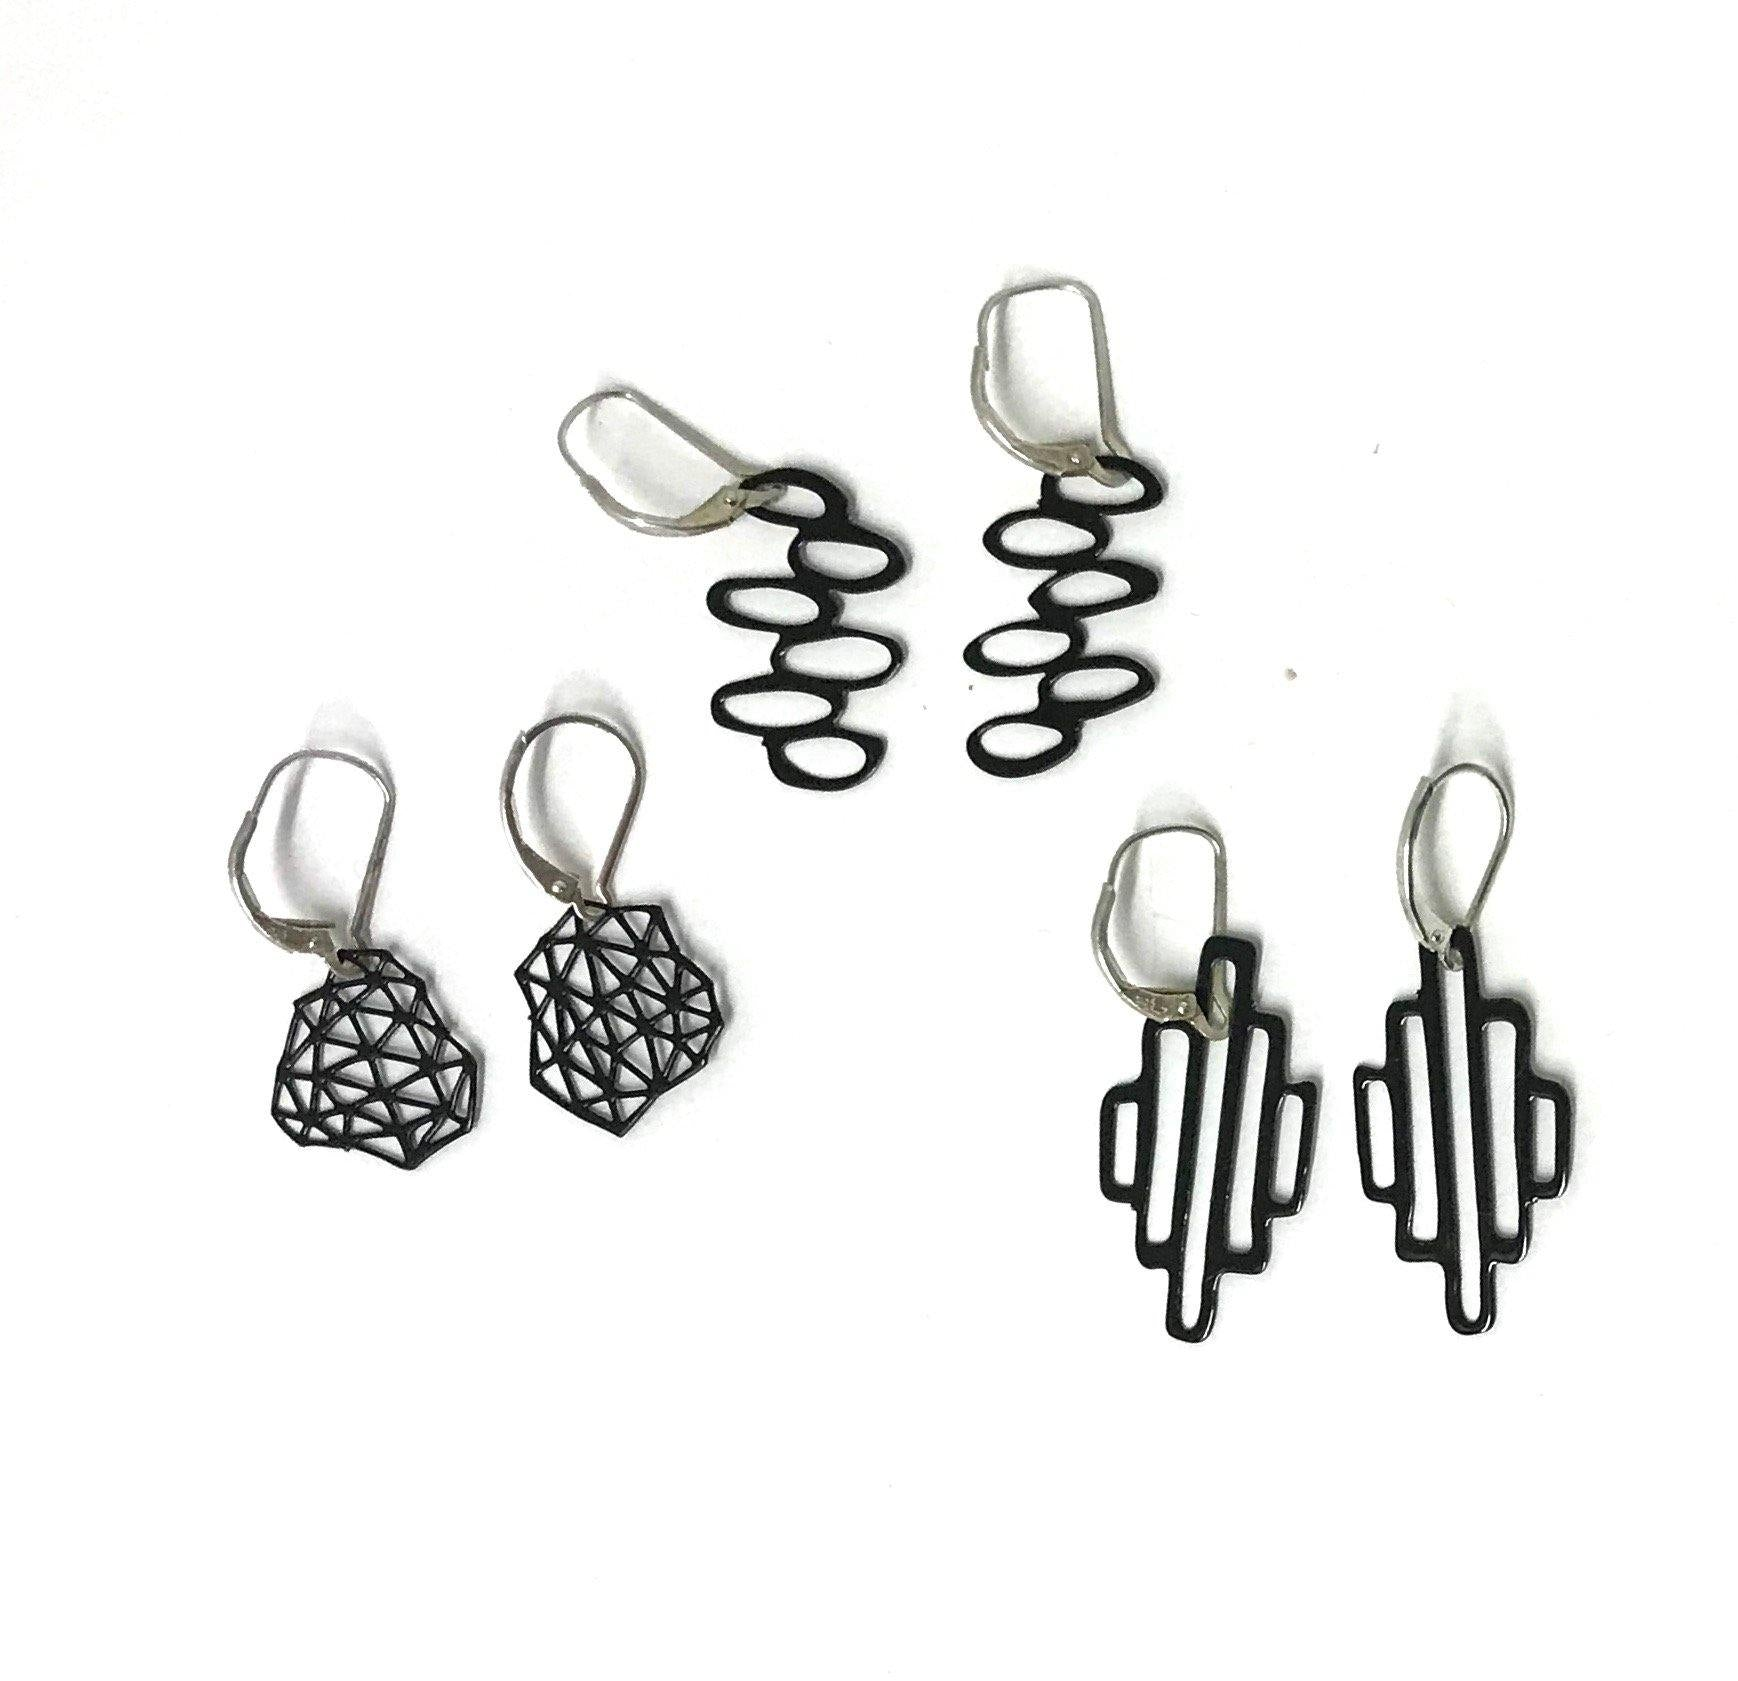 Mini Mod Pop-Out Earrings - Pop-Out Jewelry